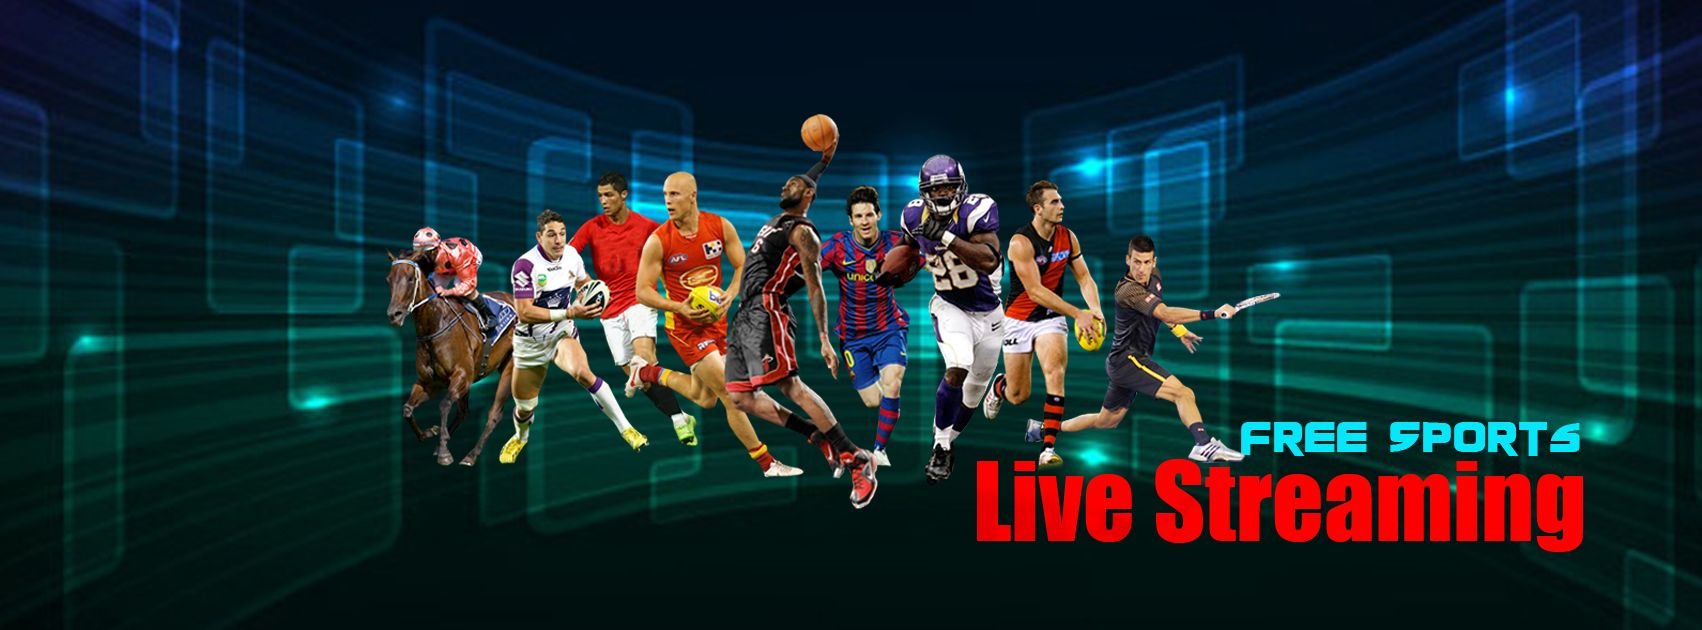 NFL fans are to tune in to our NFL live stream